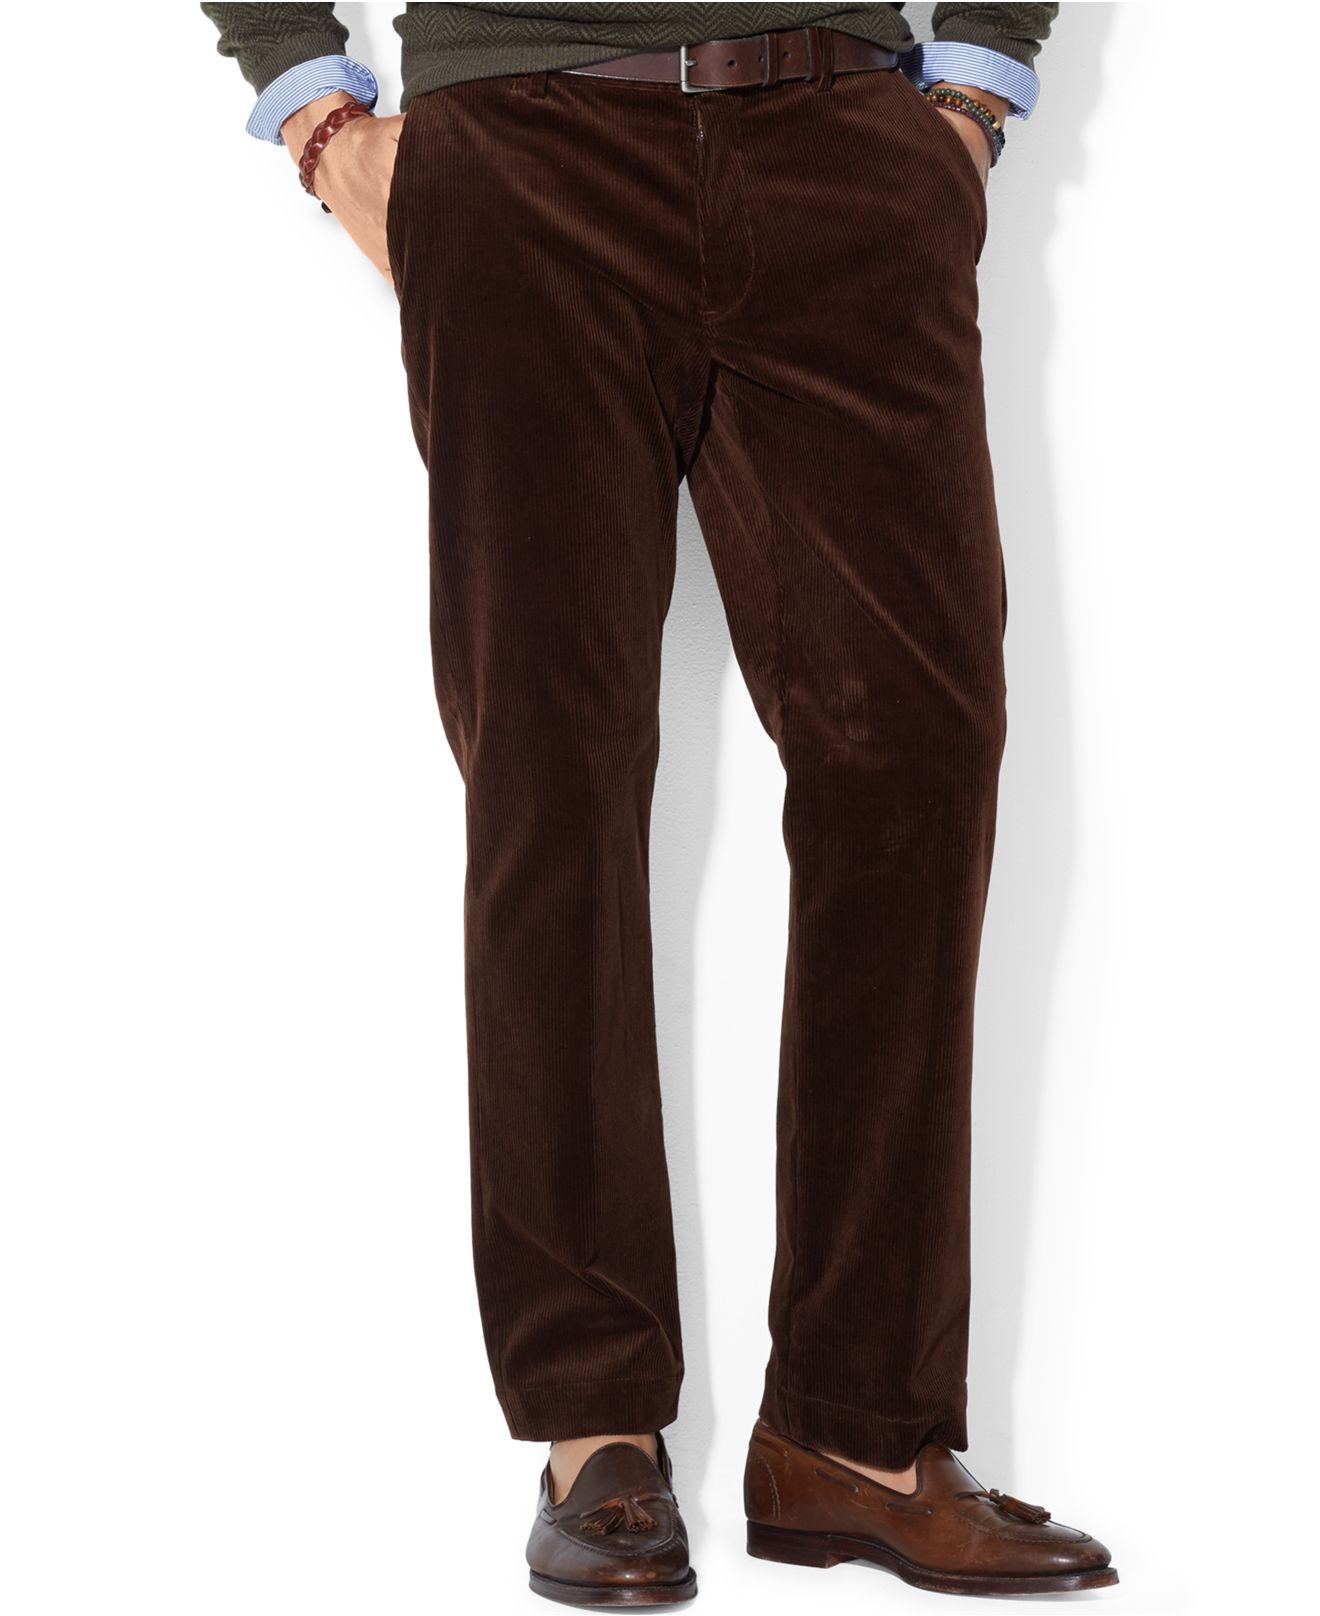 Polo ralph lauren Classic-Fit Newport Corduroy Pants in Brown for ...